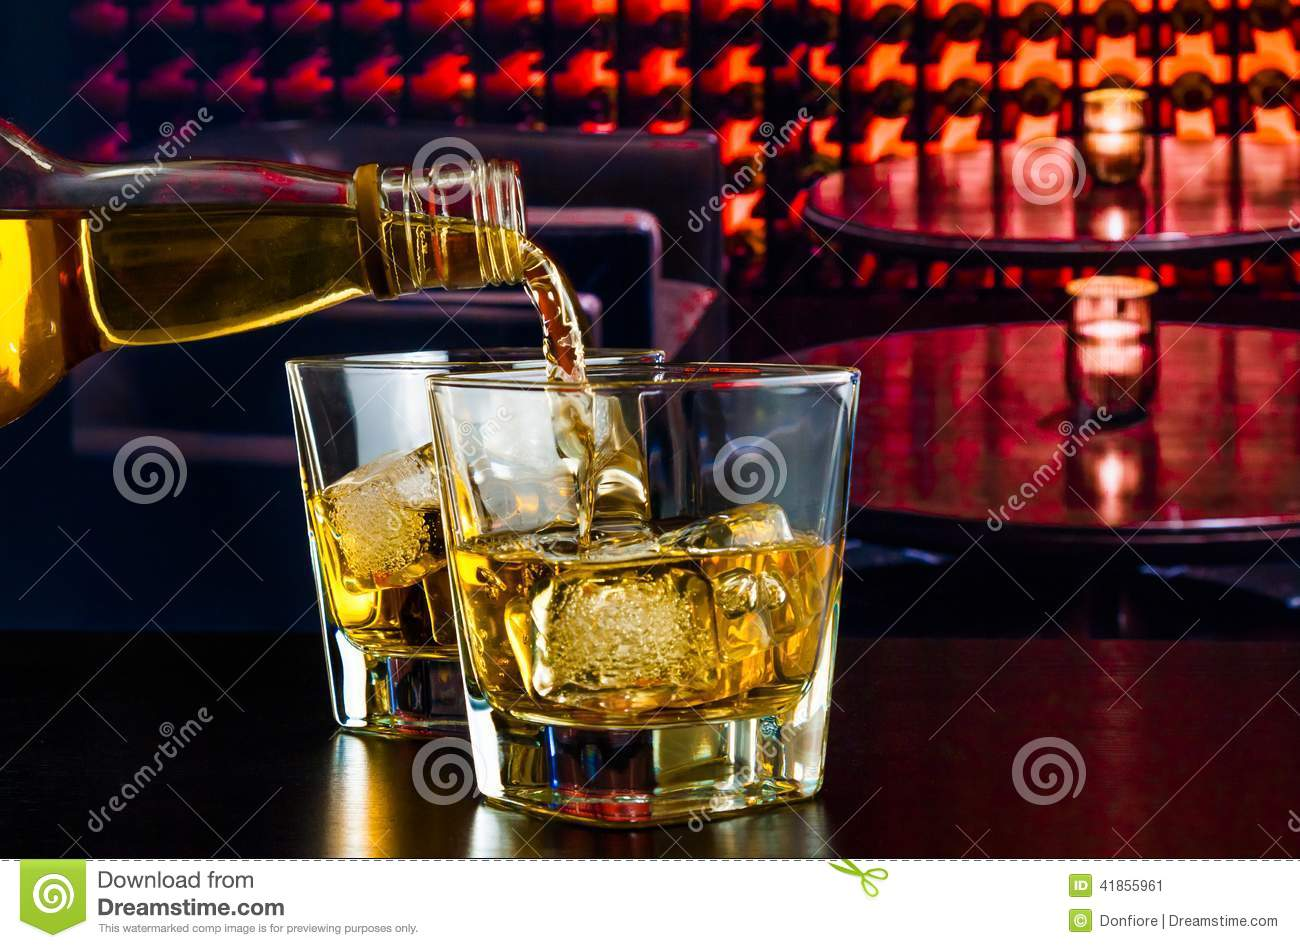 Barman Pouring Whiskey Lounge Bar Wood Table Photos Free Royalty Free Stock Photos From Dreamstime